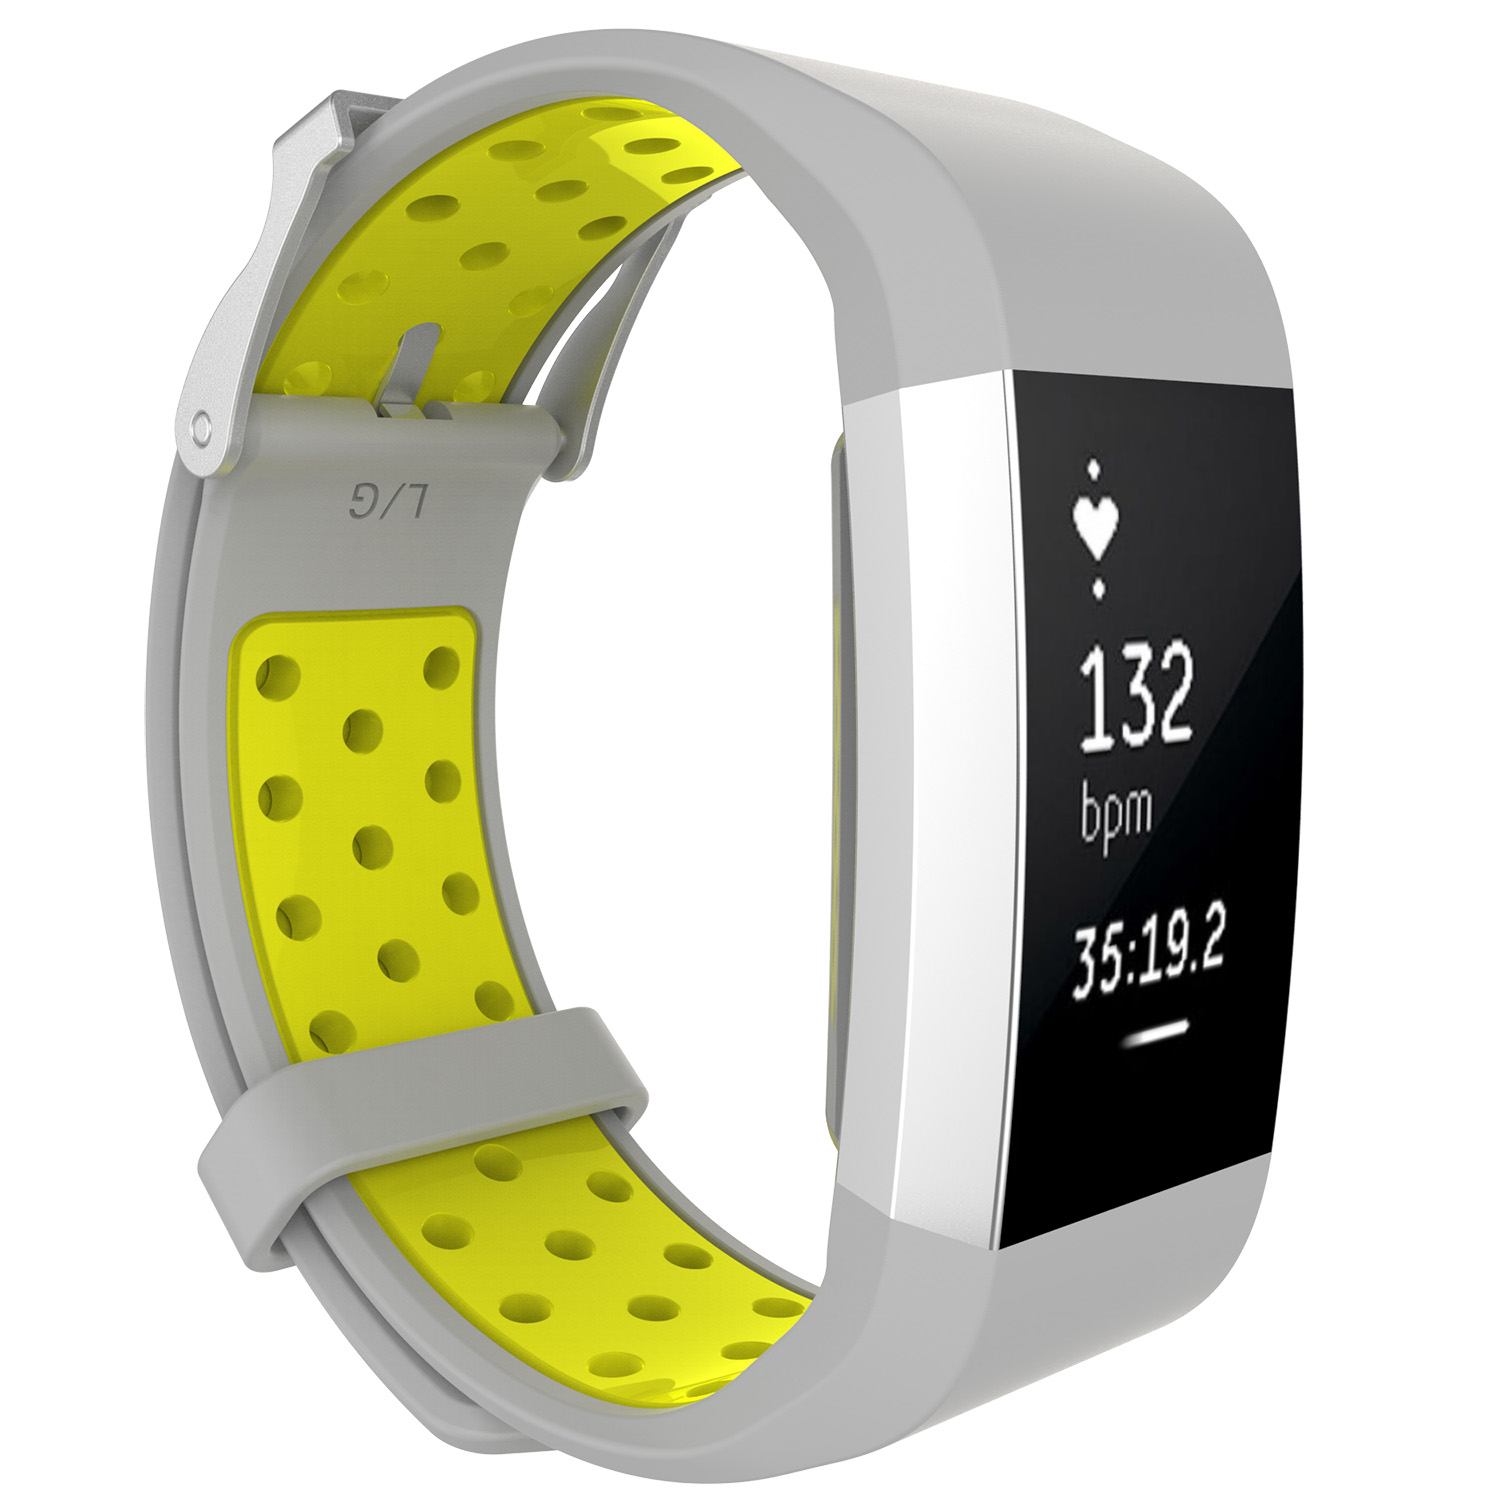 Replacement-Silicone-Wristband-Watch-Strap-Bands-Bracelet-For-Fitbit-Charge-2 thumbnail 92